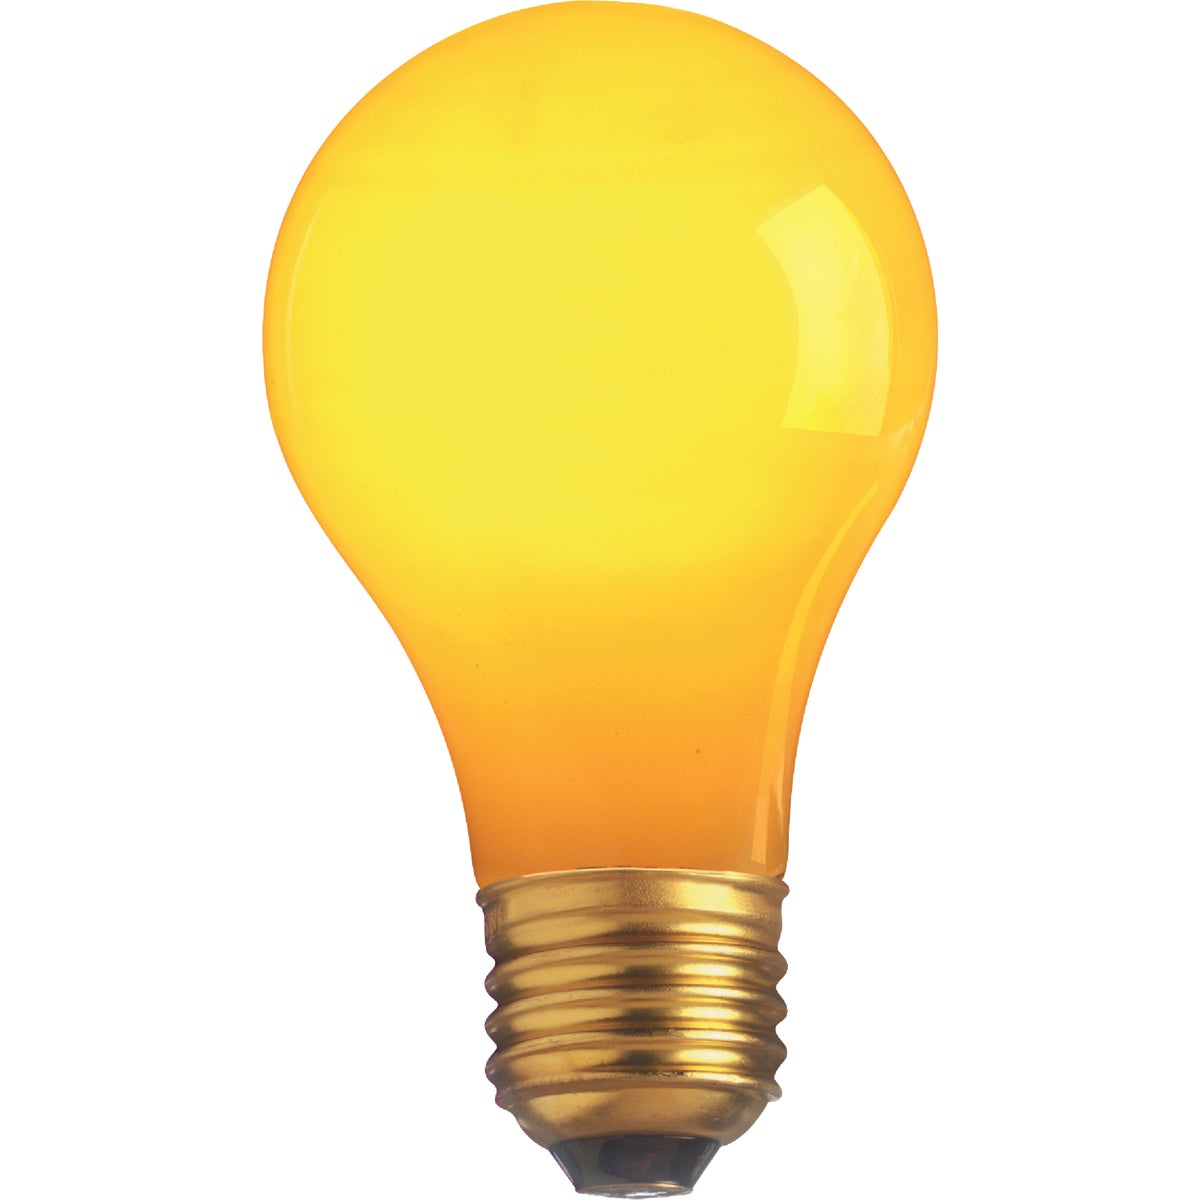 25W YELLOW PARTY BULB - 49728 by G E Lighting